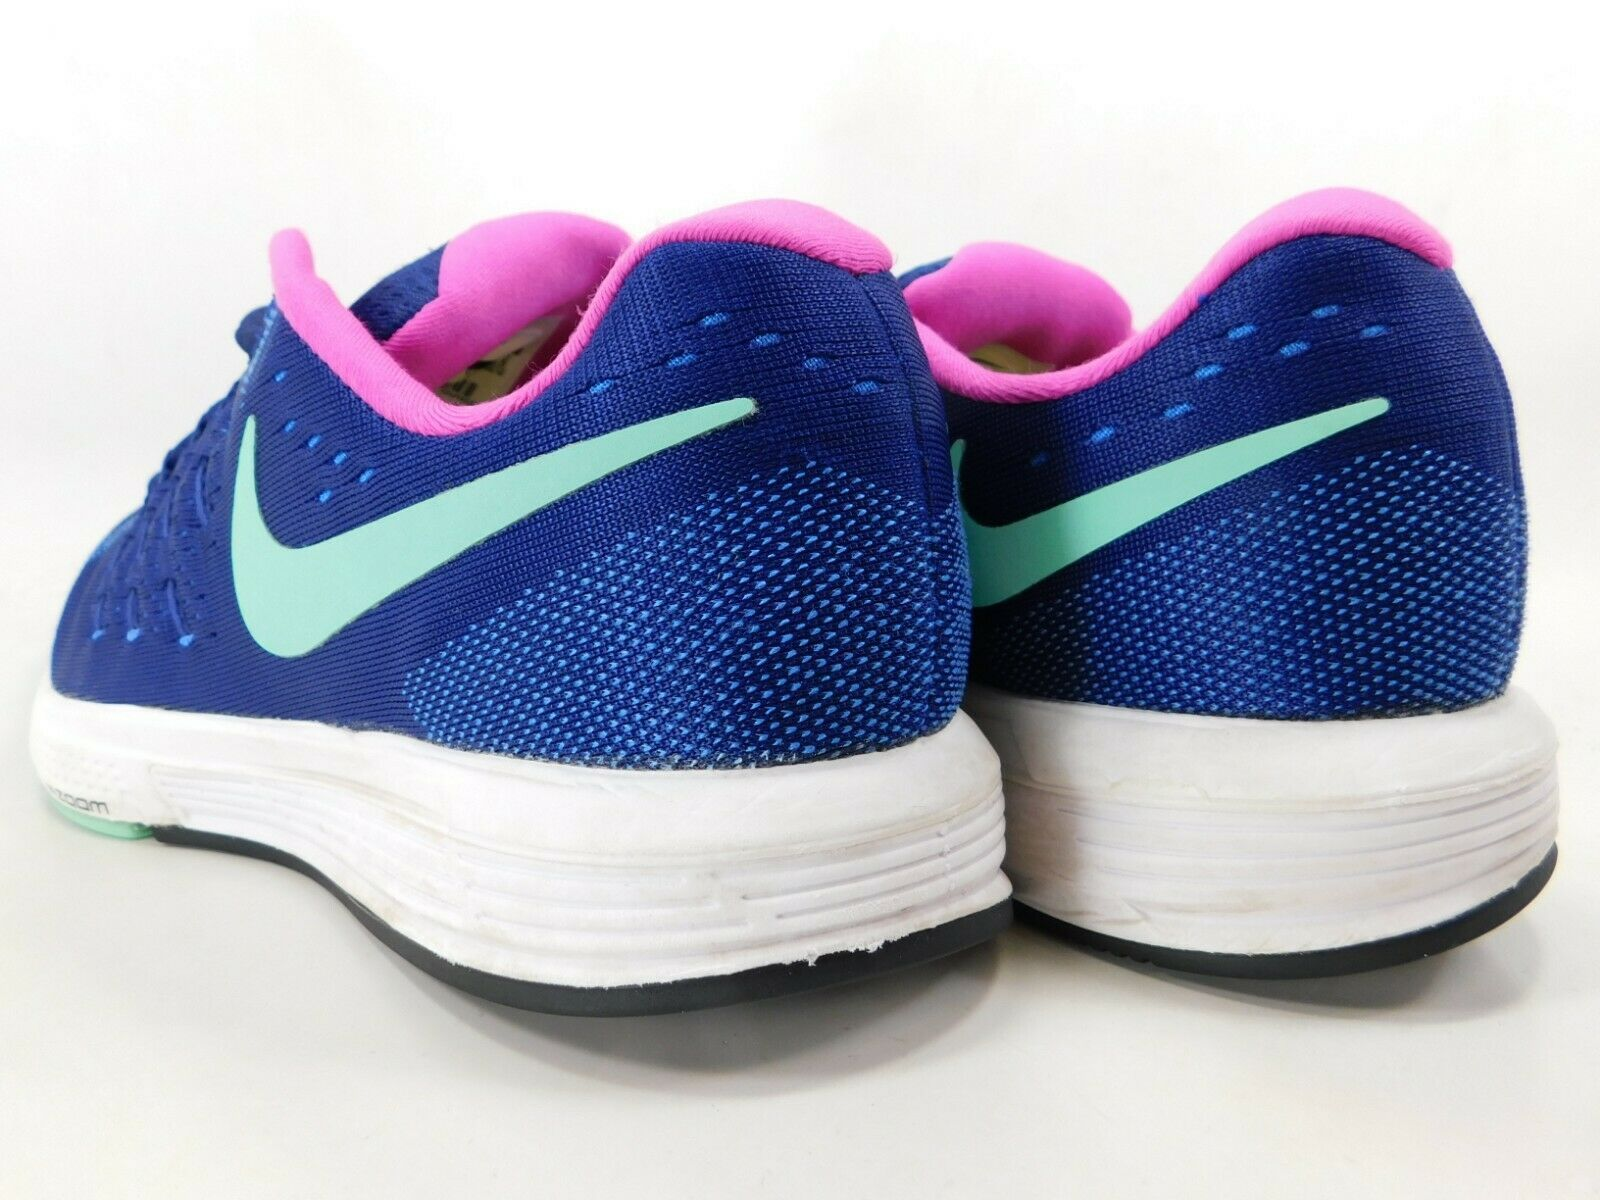 newest collection b3c3d 984f3 Nike Air Zoom Vomero 11 Taille 9.5 M(B) Ue 41 Femmes Chaussures Course